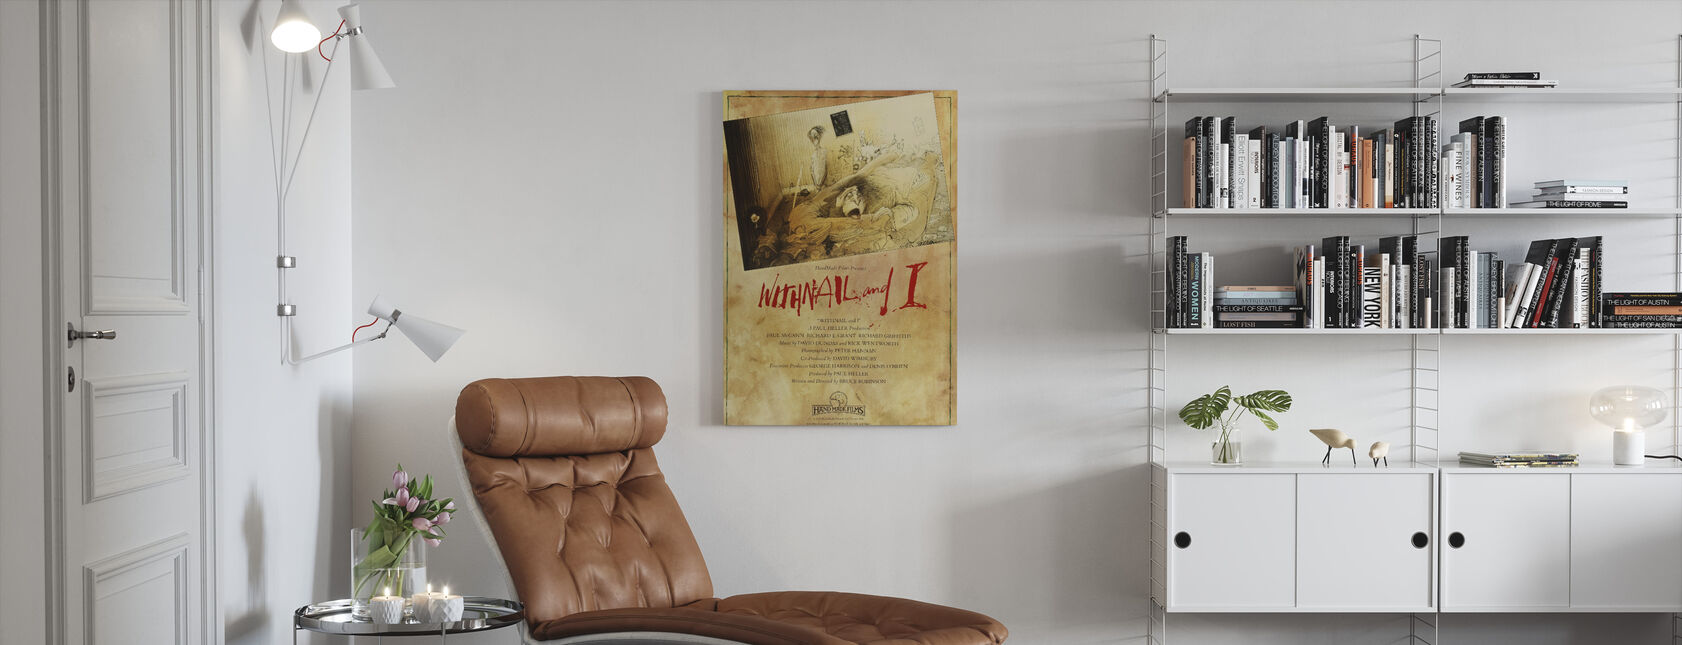 Withnail and I - Canvas print - Living Room